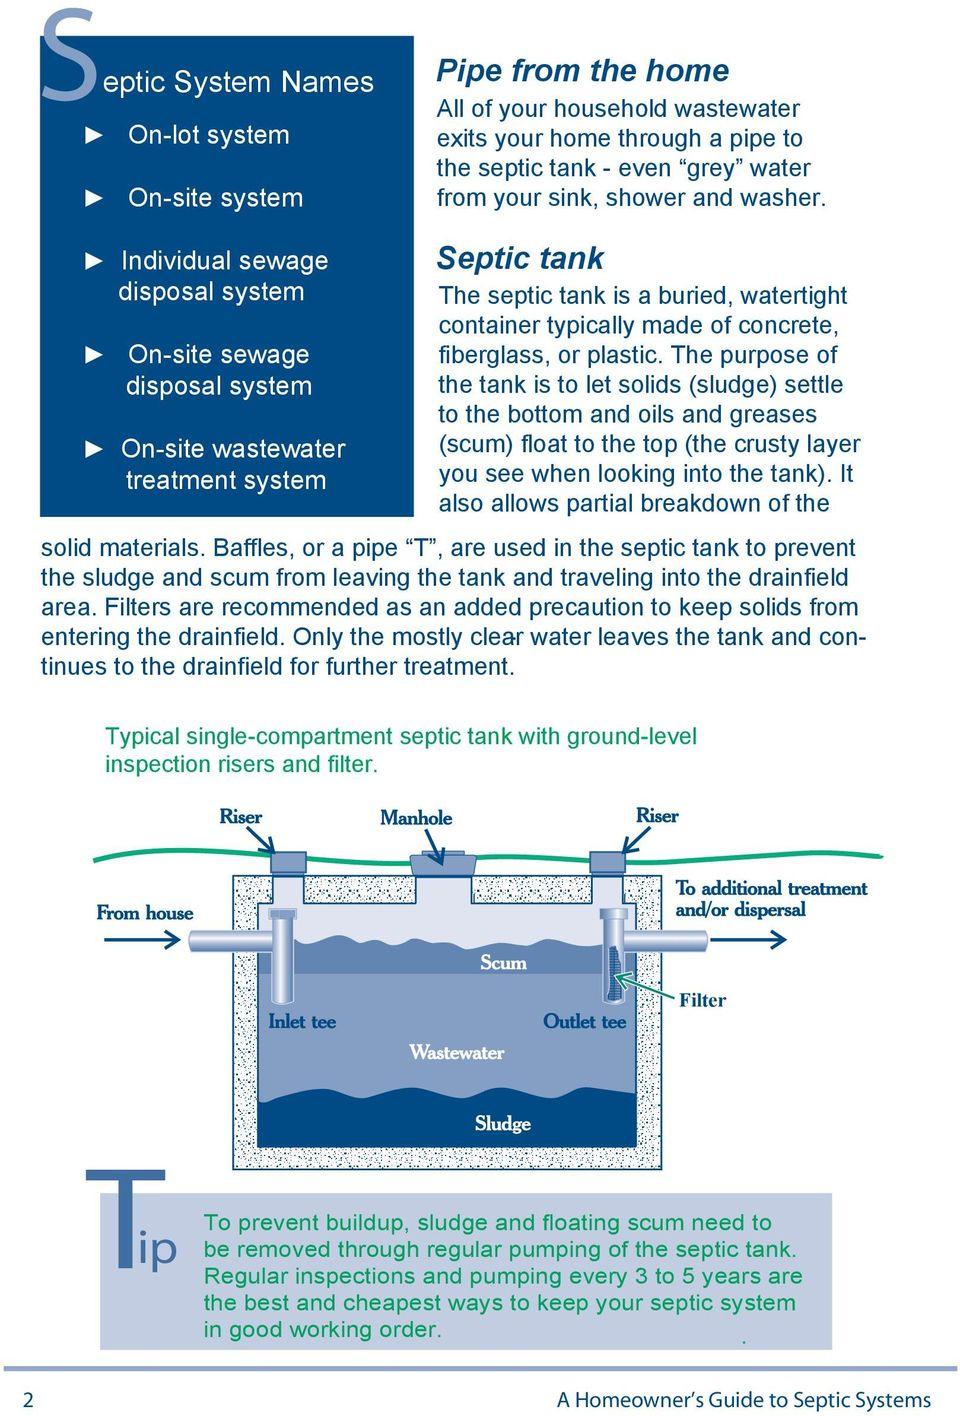 Individual sewage disposal system On-site sewage disposal system On-site wastewater treatment system Septic tank The septic tank is a buried, watertight container typically made of concrete,